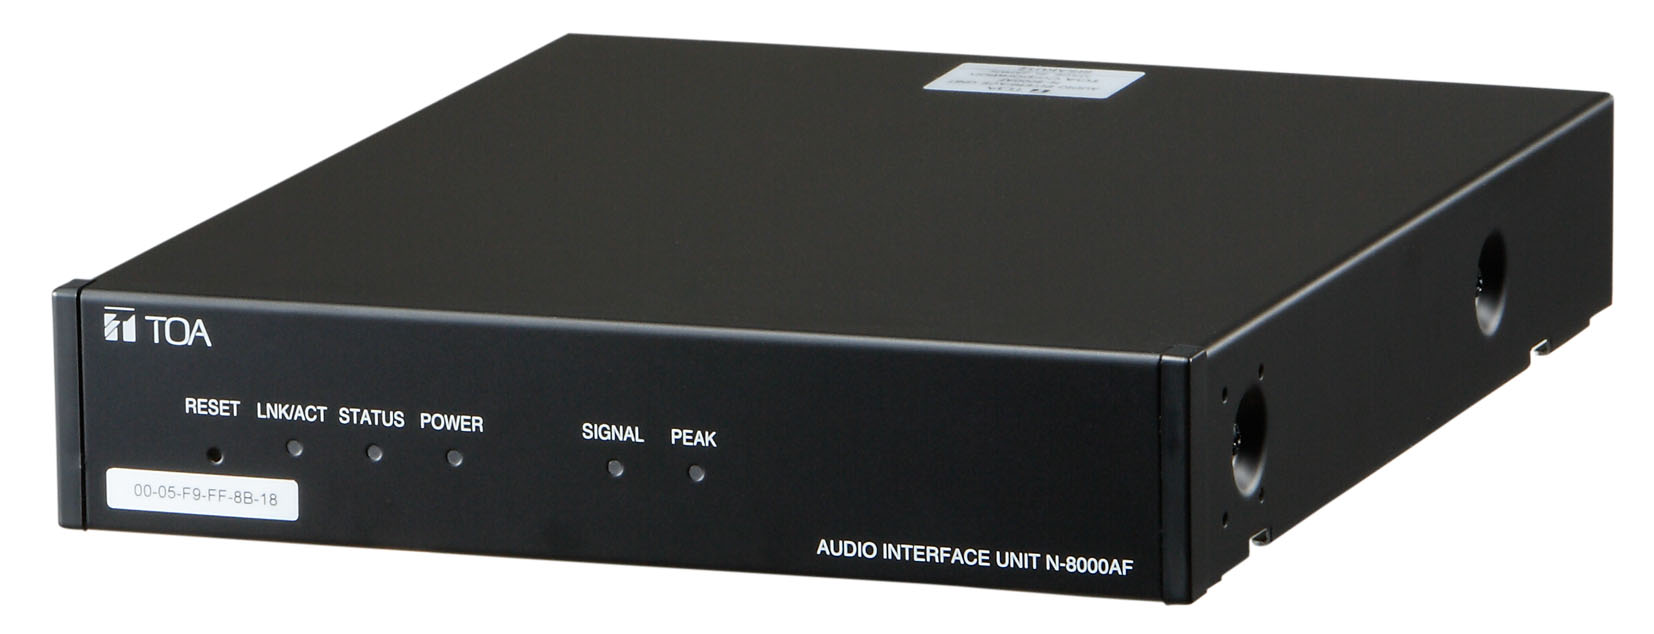 Bộ giao diện audio TOA N-8000AF CE